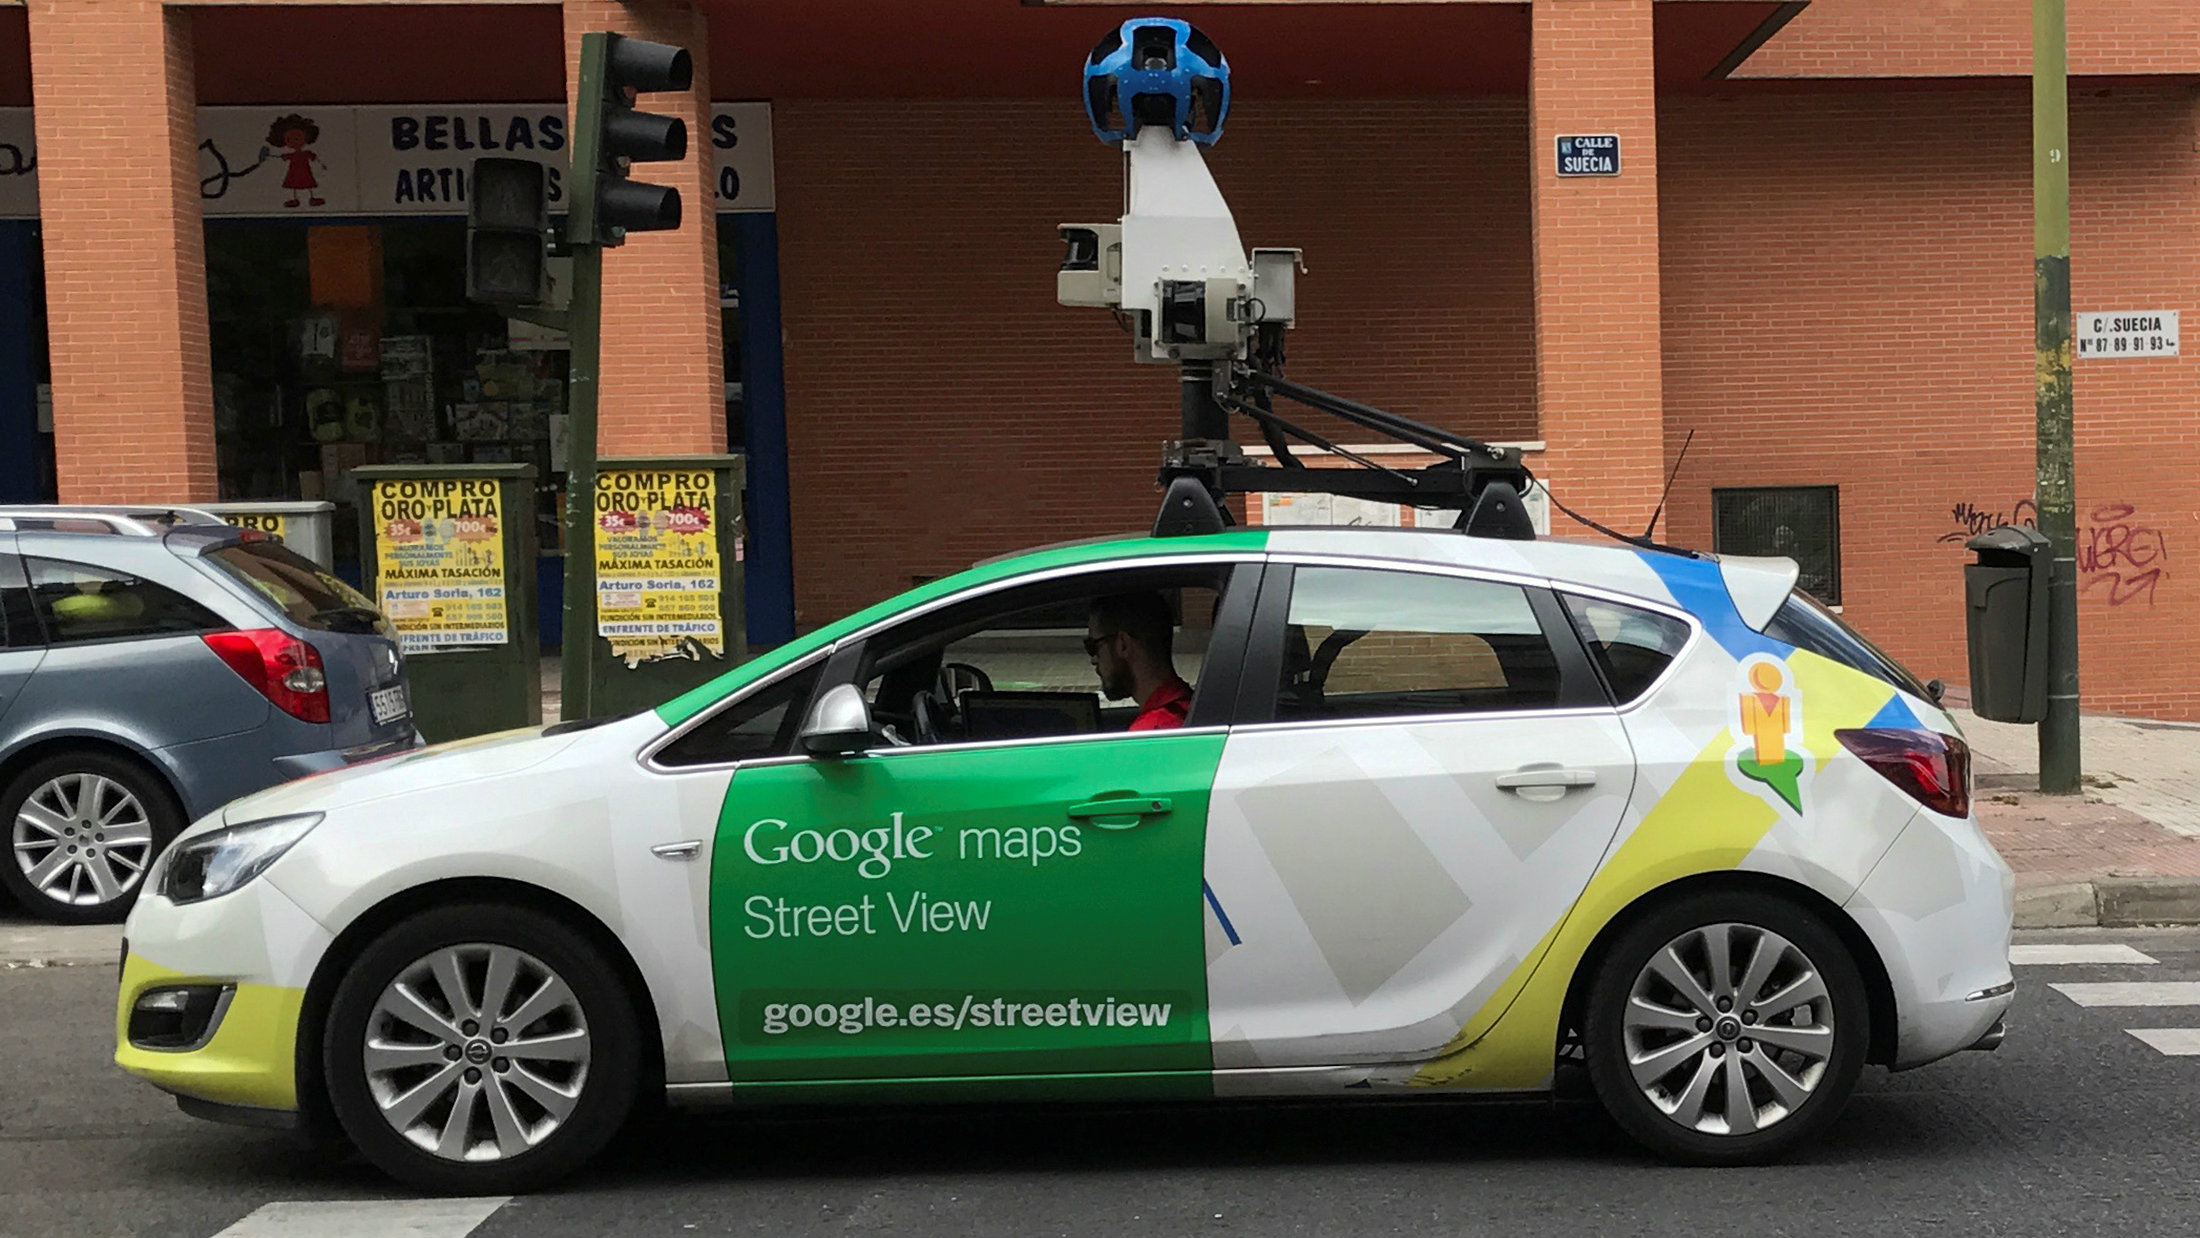 A Google Street View car is seen in a street in Madrid